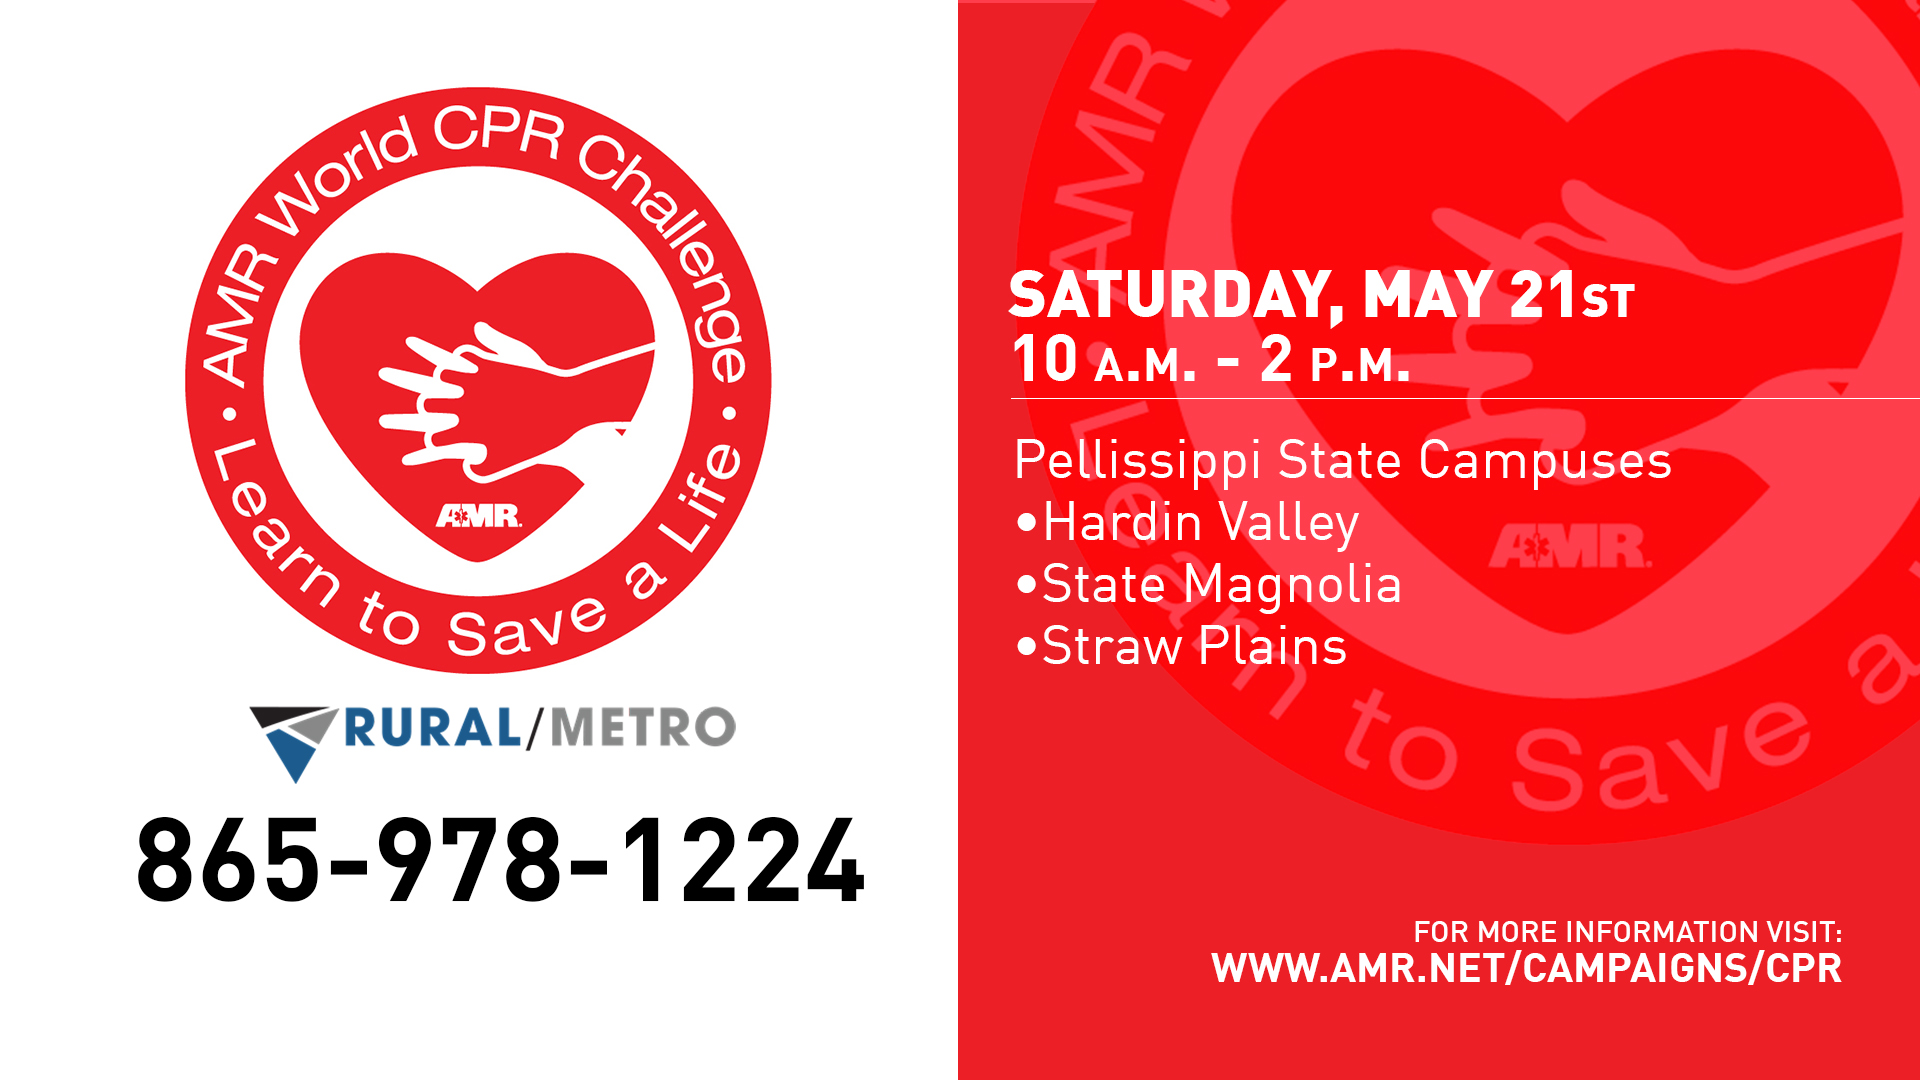 Wbir neighbor saves mans life by performing cpr on saturday may 21 rural metro amr will be offering free cpr classes xflitez Choice Image